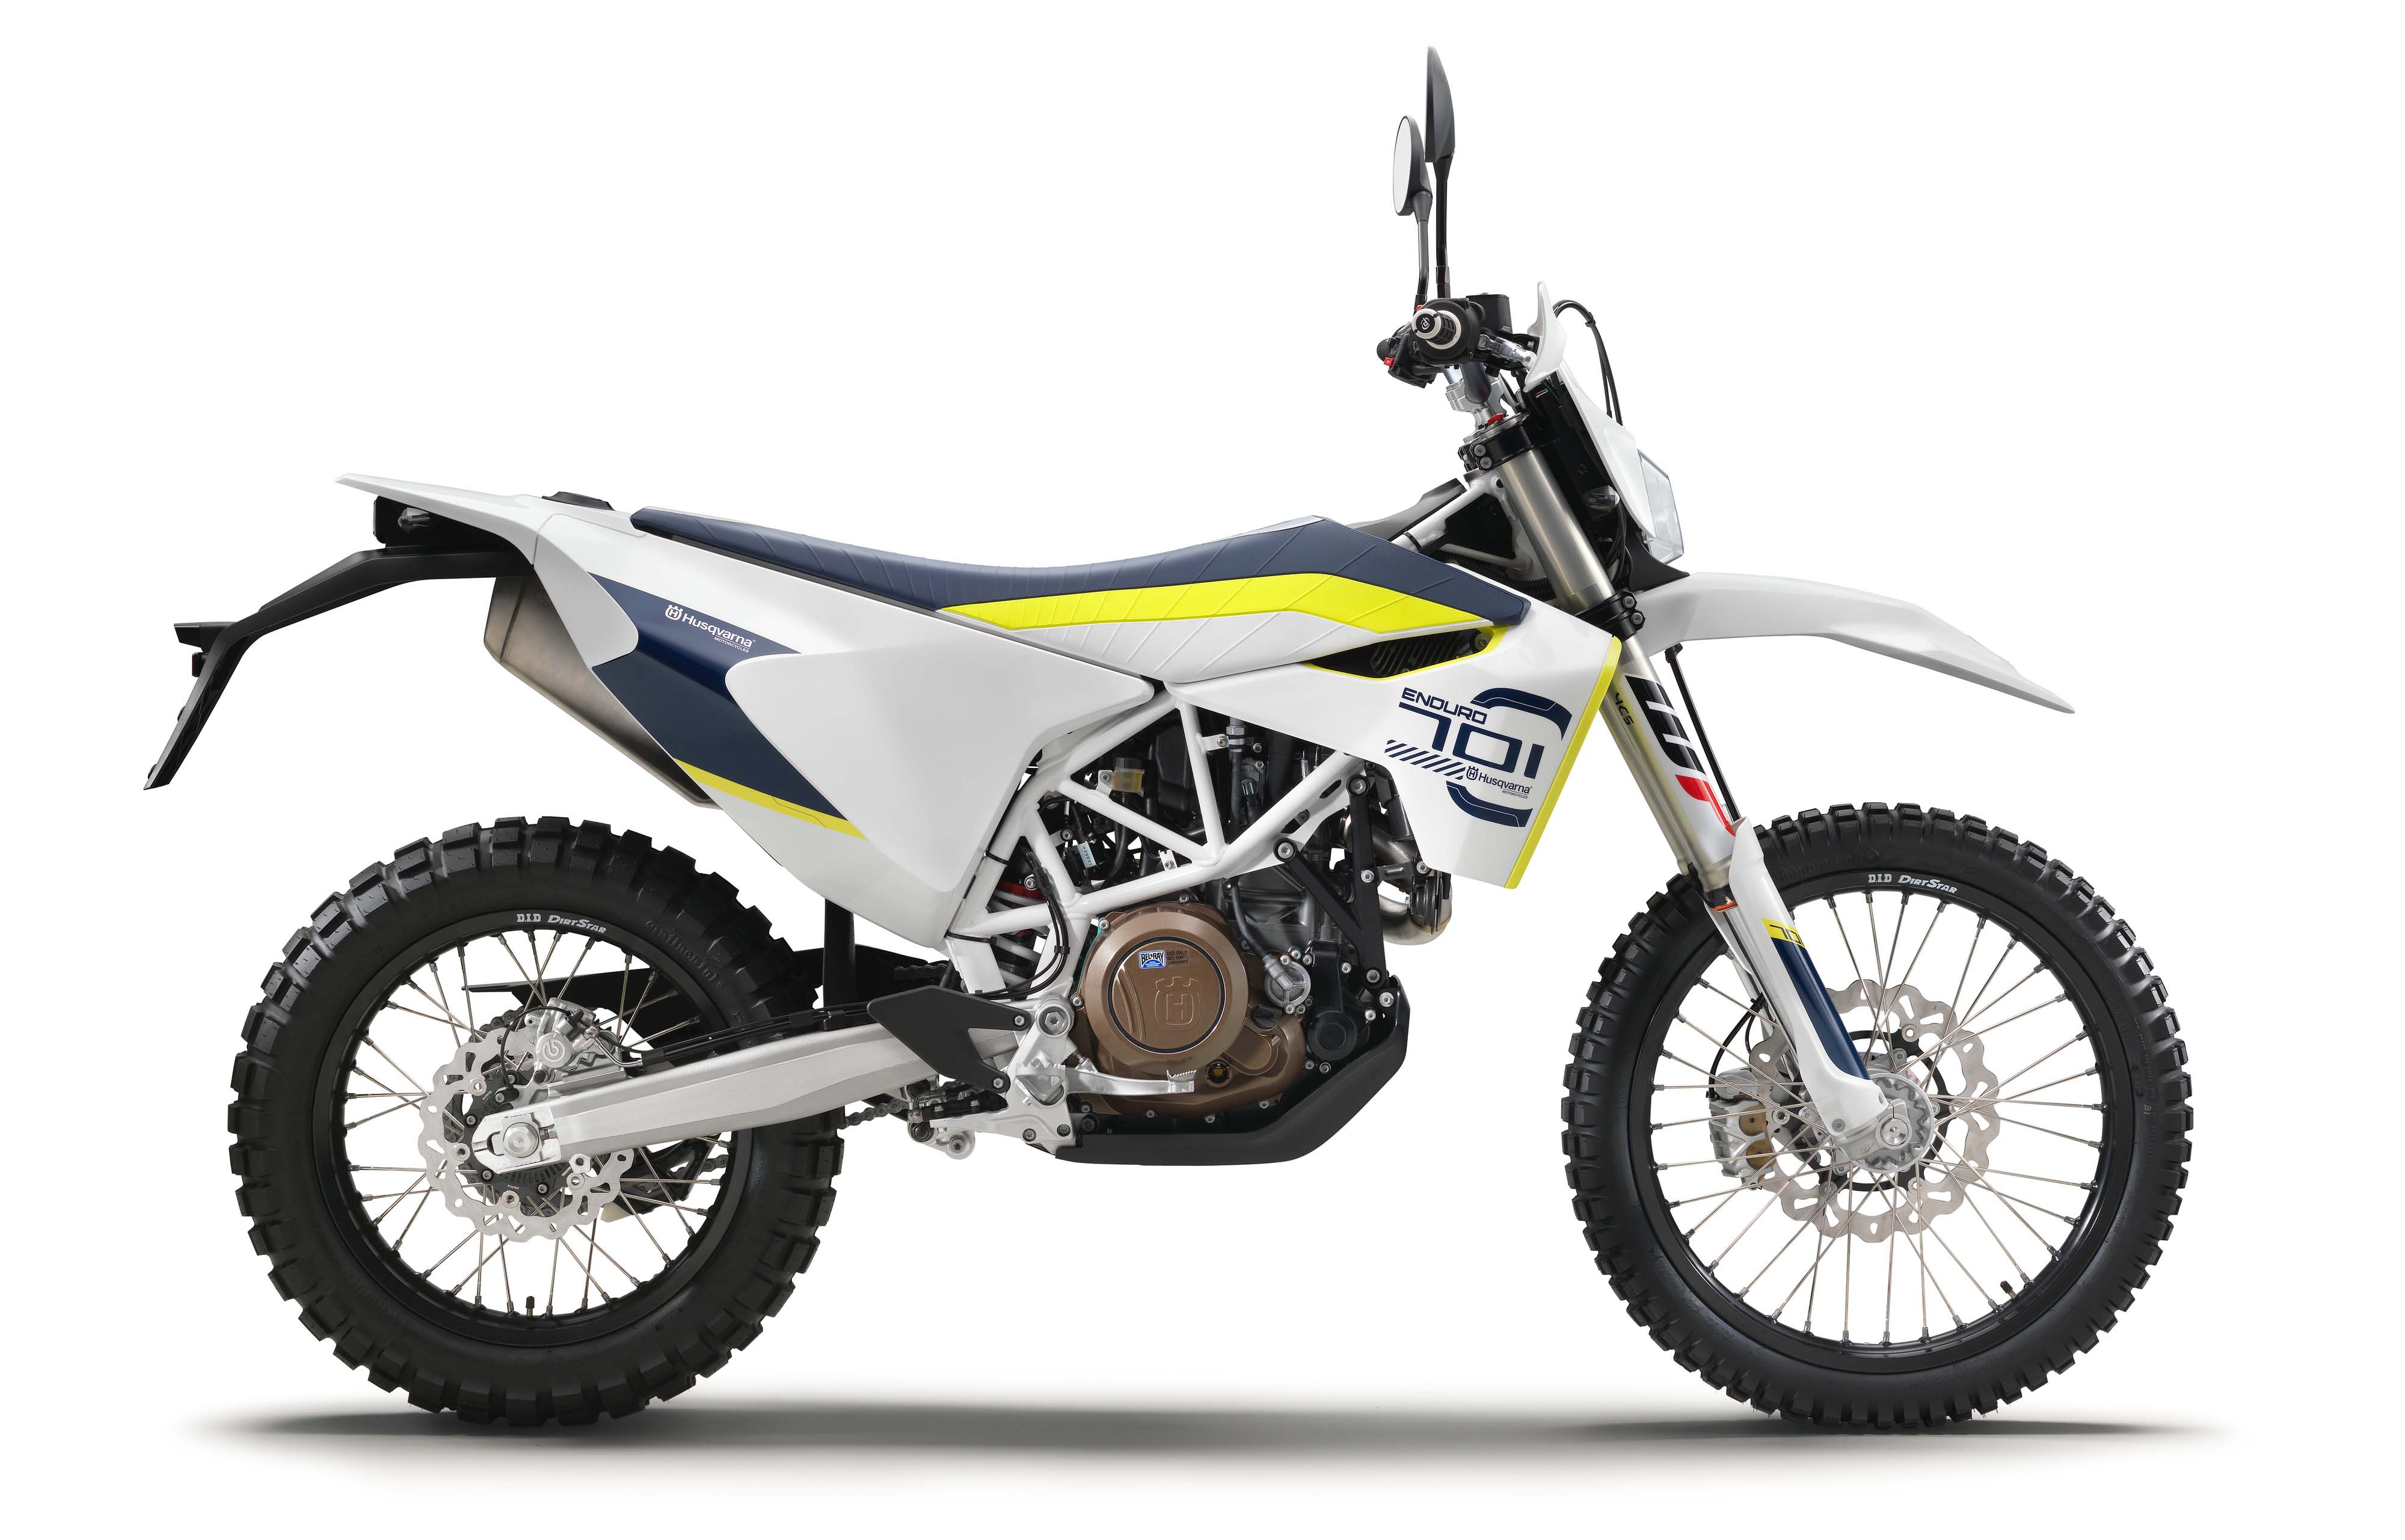 2017 husqvarna 701 supermoto updated with new motor. Black Bedroom Furniture Sets. Home Design Ideas